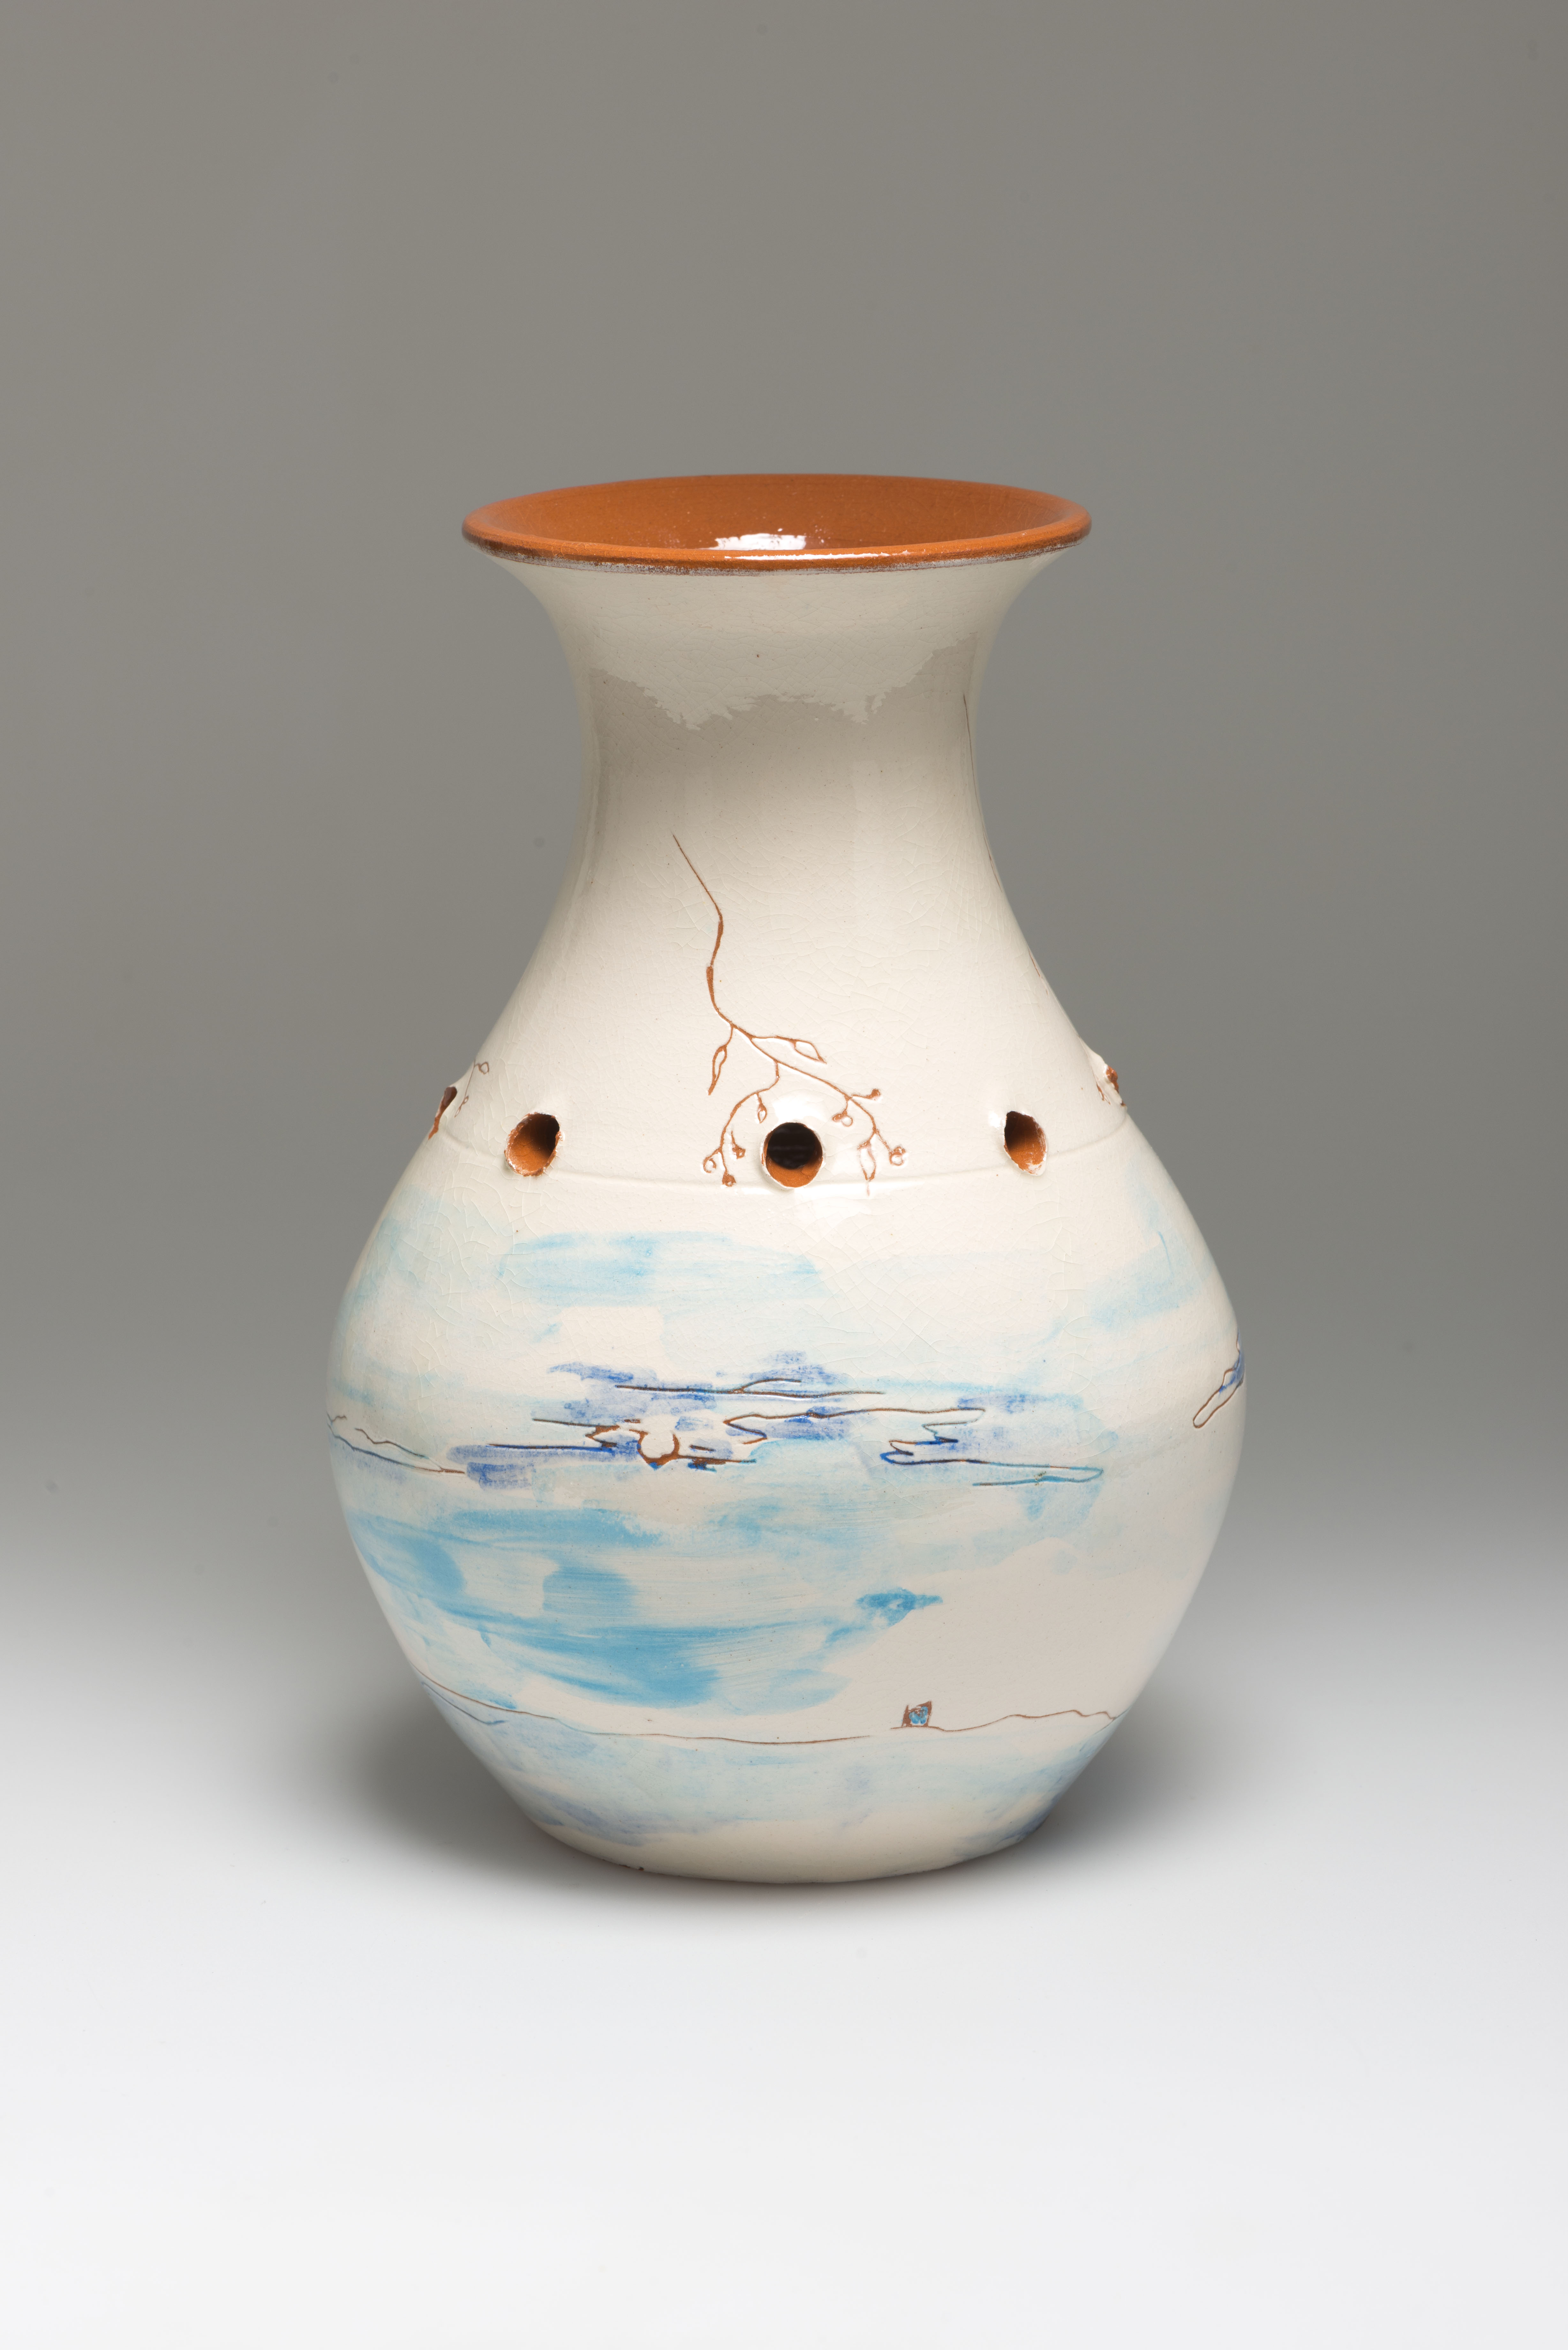 Flower Vase, ceramic, NL 2012